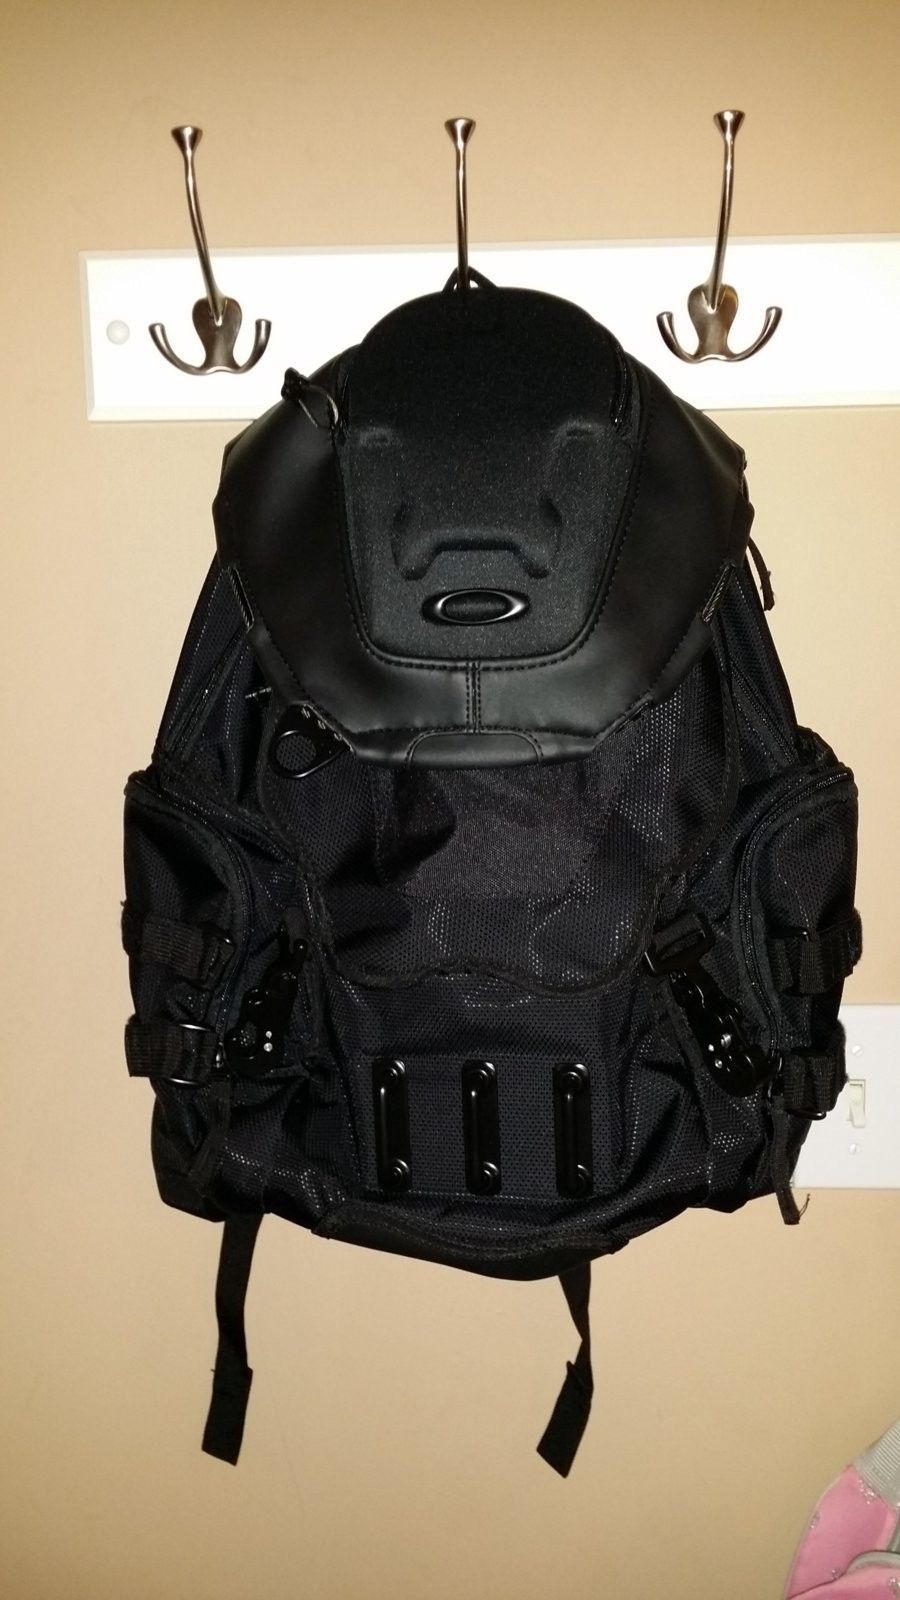 Oakley Bathroom Sink Backpack - Stealth Black - 20150826_193752.jpg